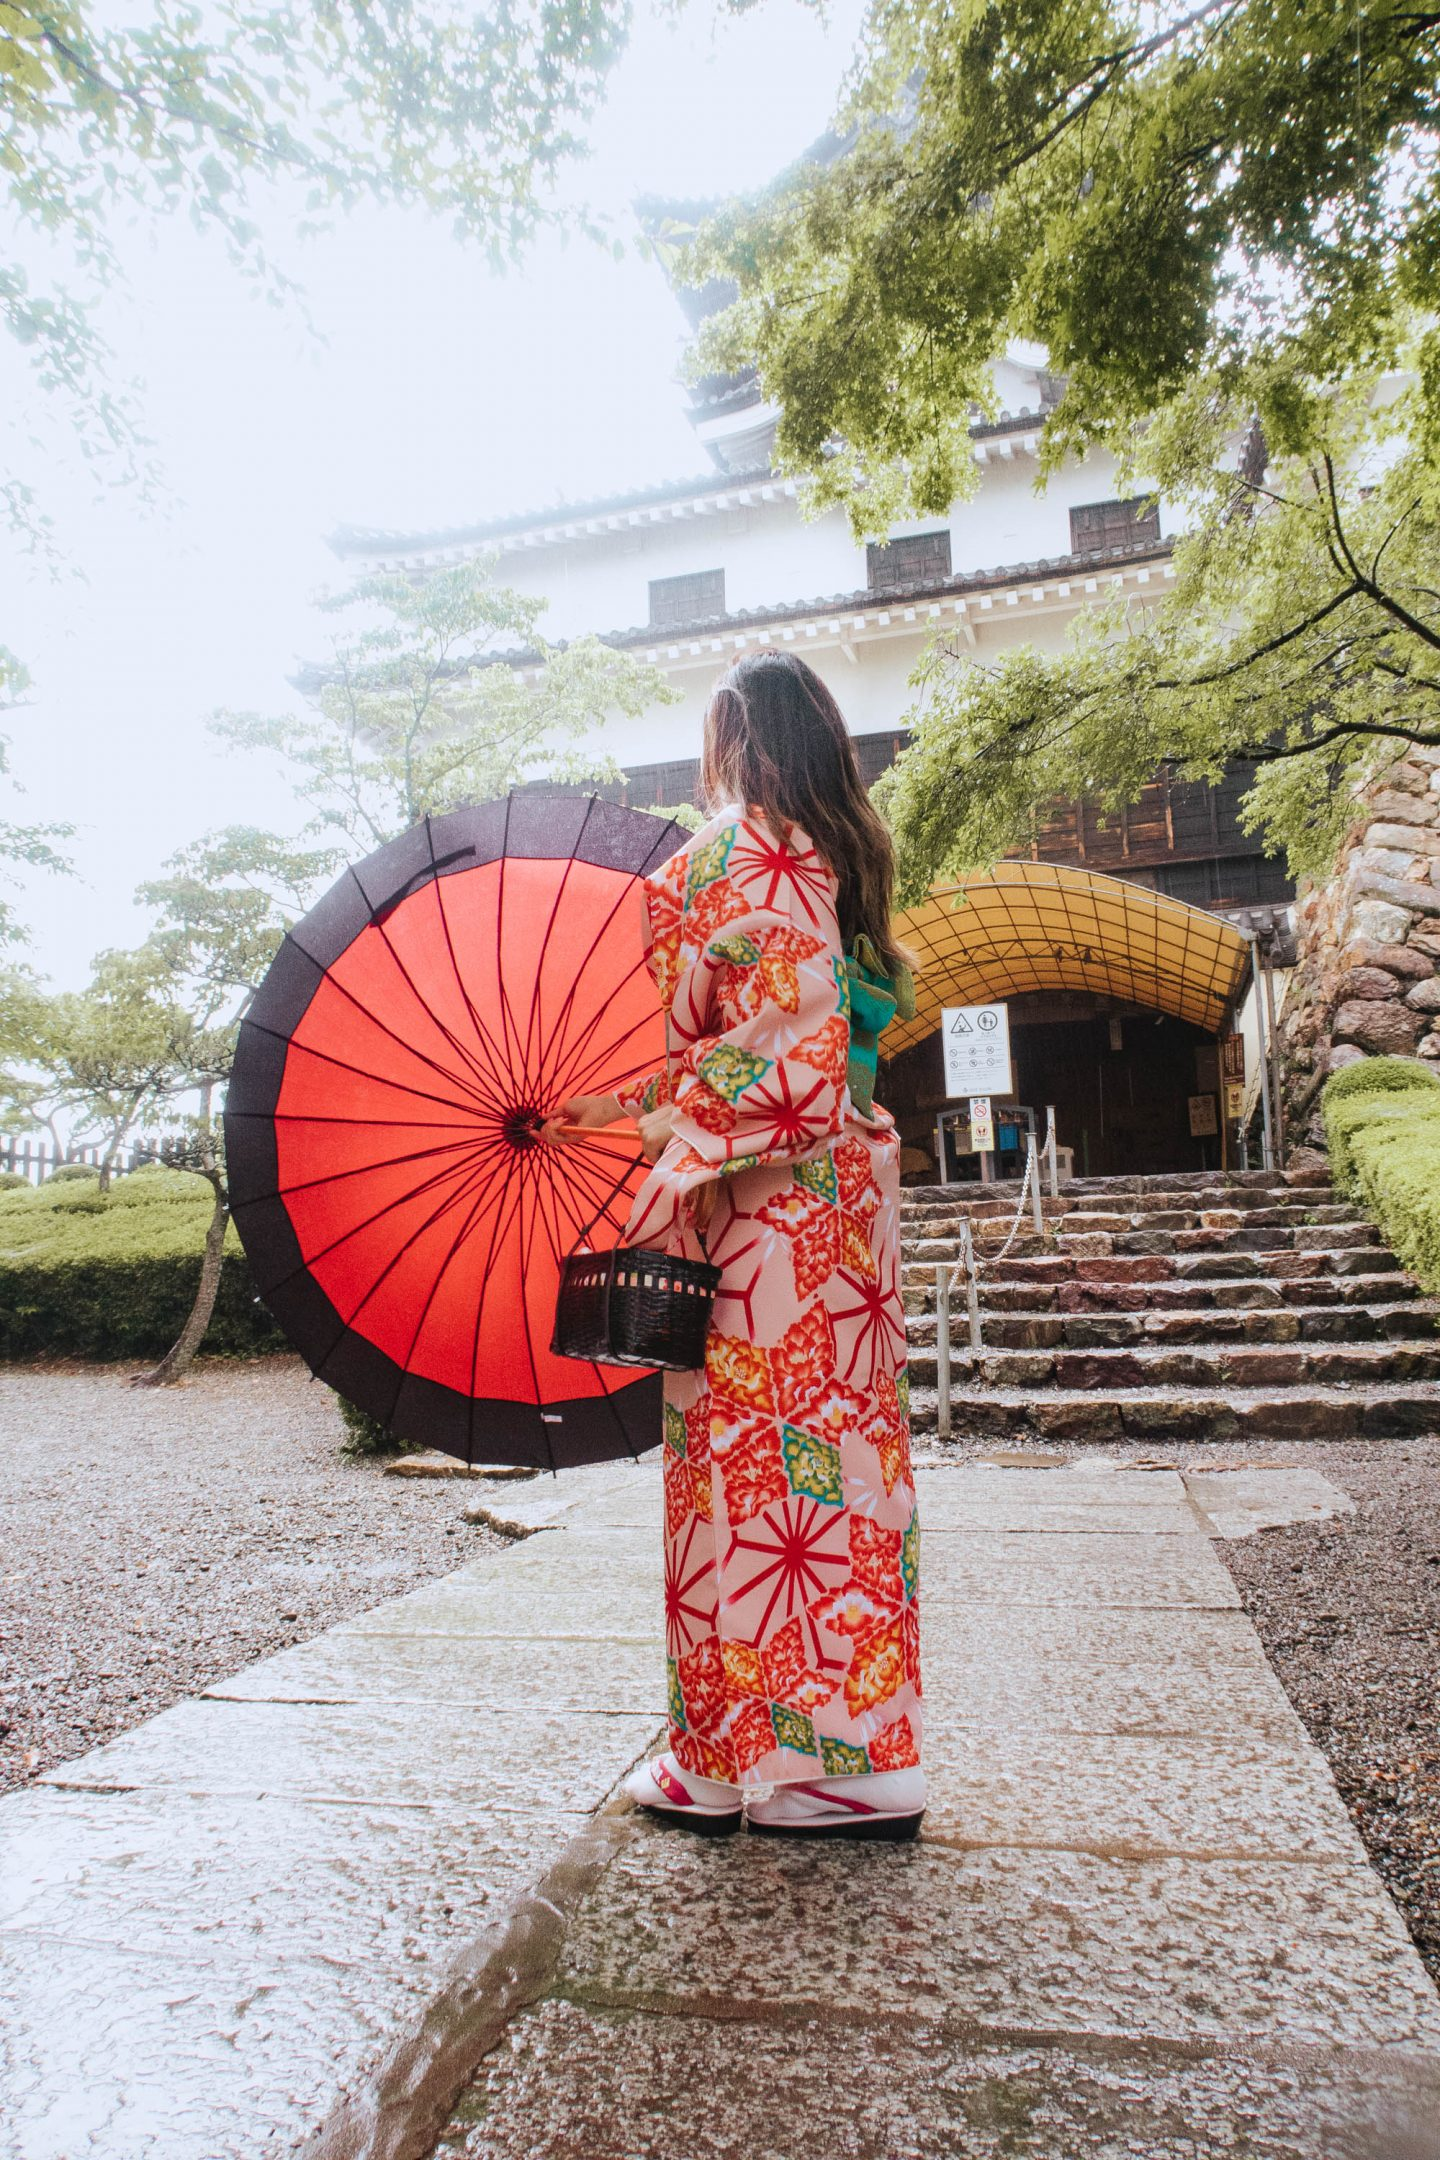 Trying on traditional silk Kimonos and umbrellas in Nishio Central Japan